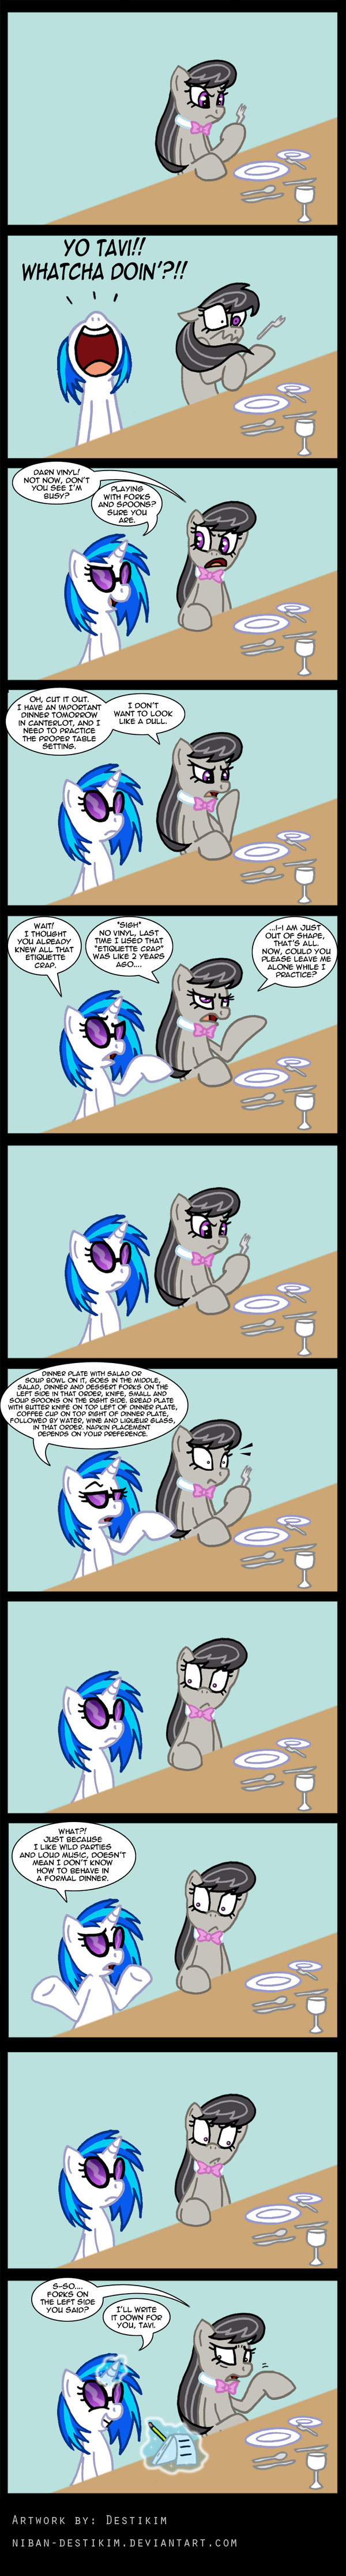 My Little Pony: Friendship Is Magic - Page 3 20120928012026J